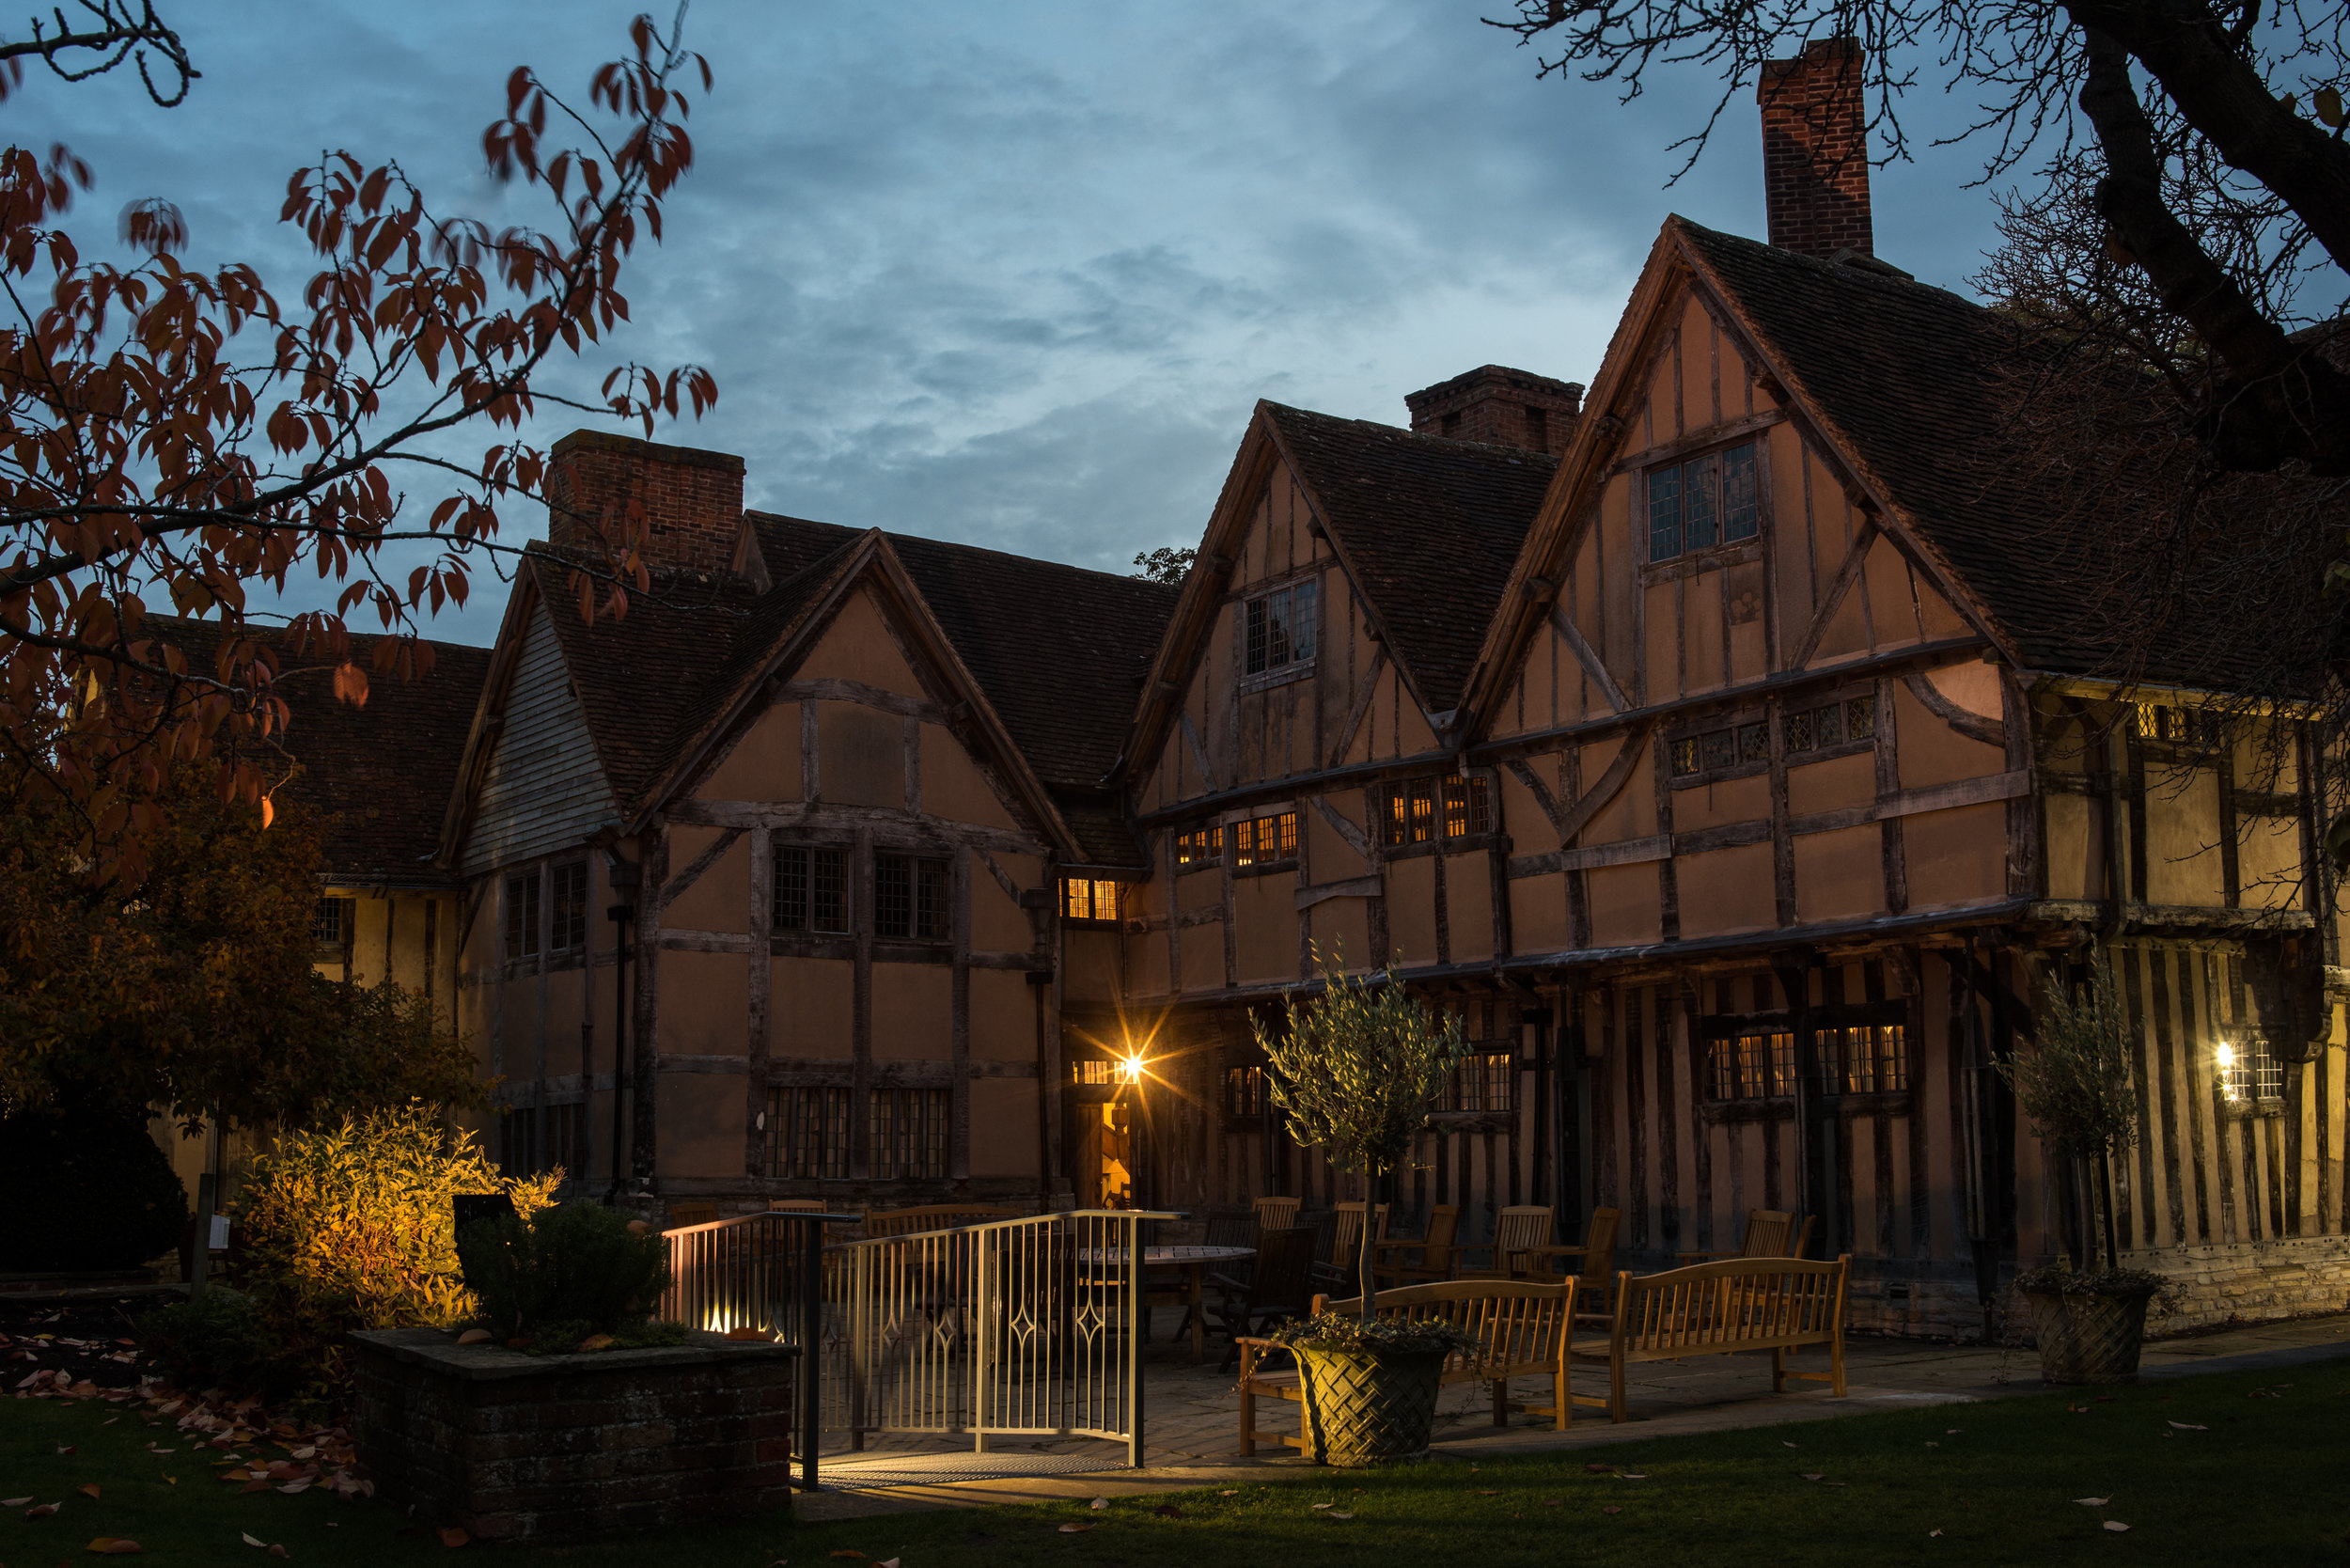 Hall's Croft was a wedding gift from Shakespeare to his daughter Susannah's husband Dr. Hall